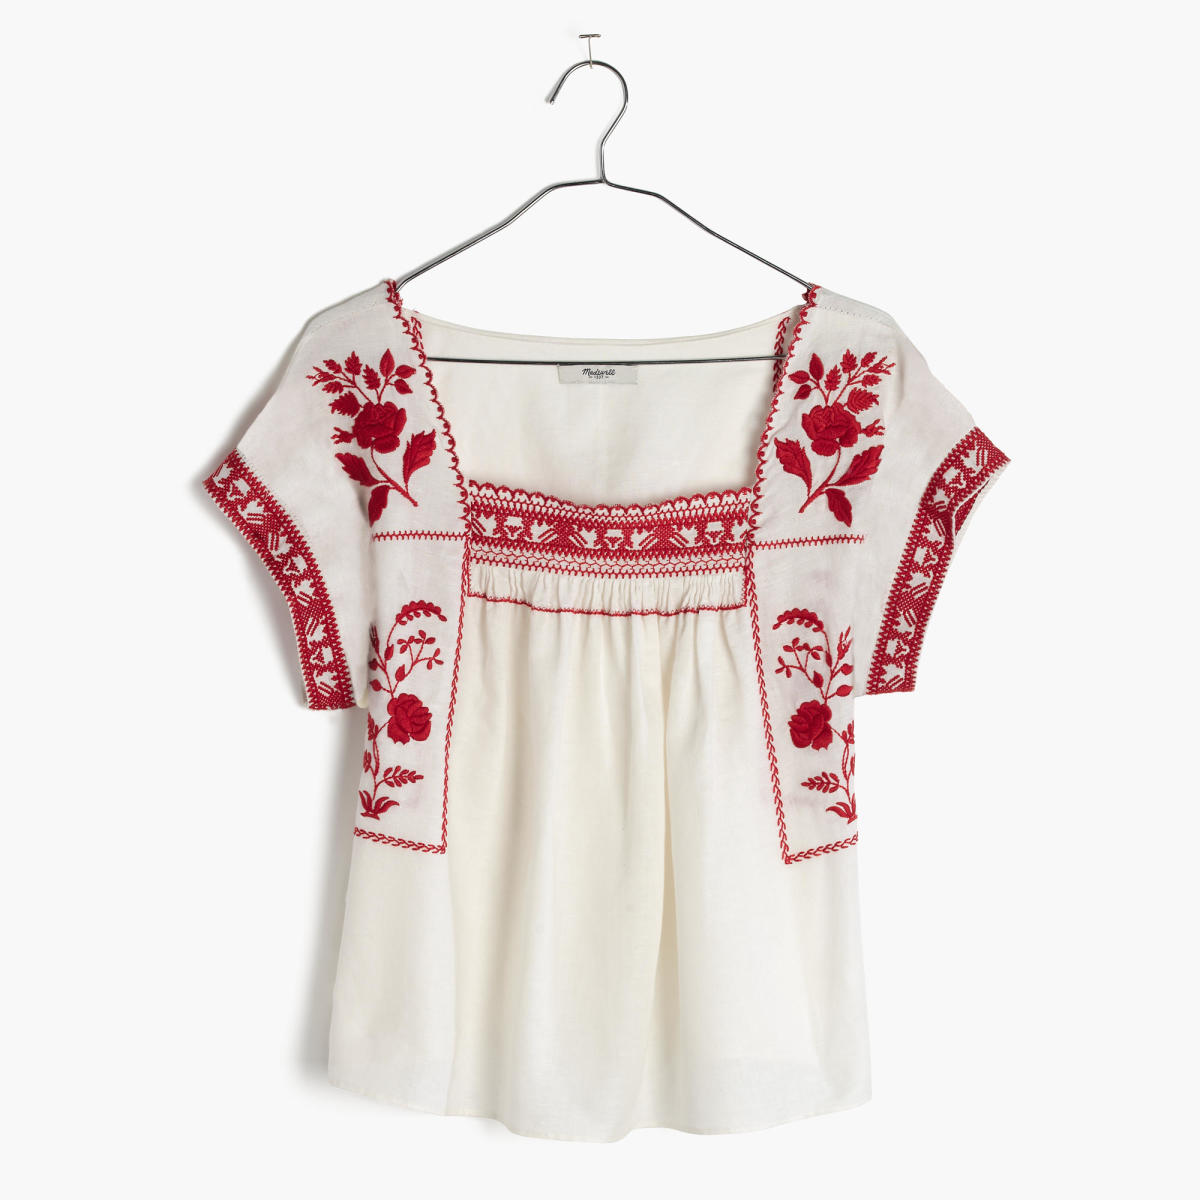 Madewell embroidered wildfield top, $98,available at Madewell